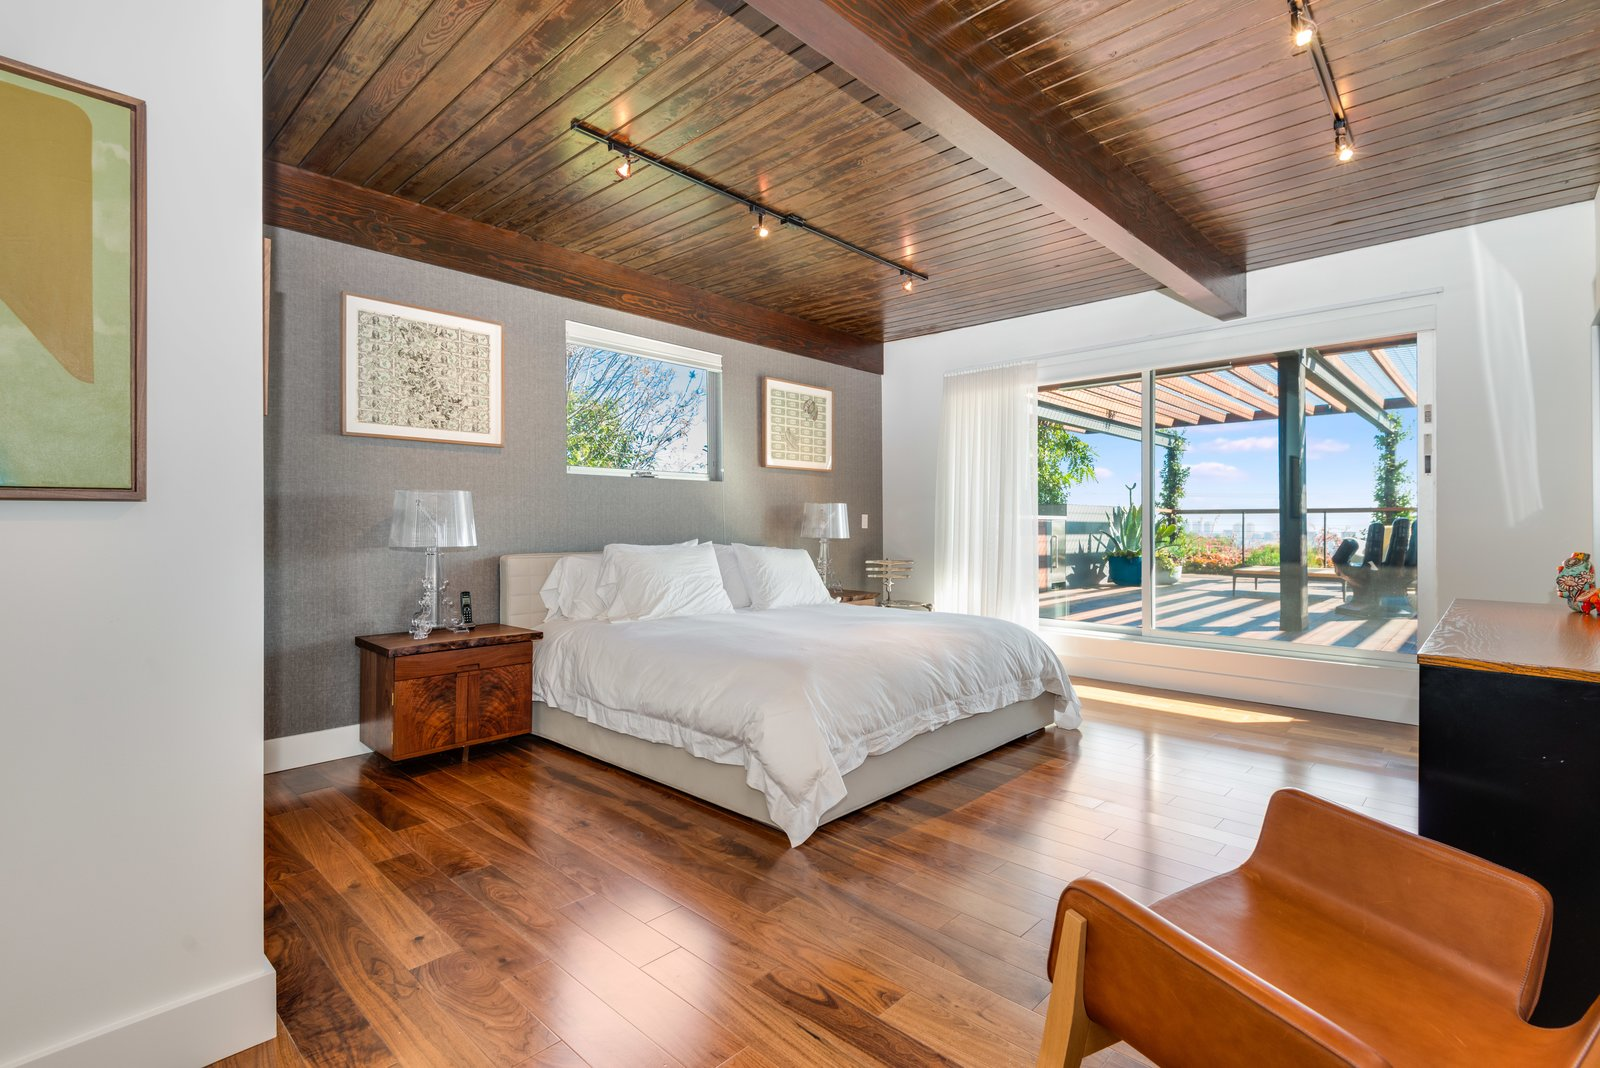 Bedroom, Dresser, Chair, Medium Hardwood, Night Stands, Bed, Table, Lamps, and Track The second bedroom also opens to the terrace and features an ensuite bath.  Best Bedroom Bed Lamps Photos from A Renovated Harry Gesner–Designed Midcentury in L.A. Wants $9.4M